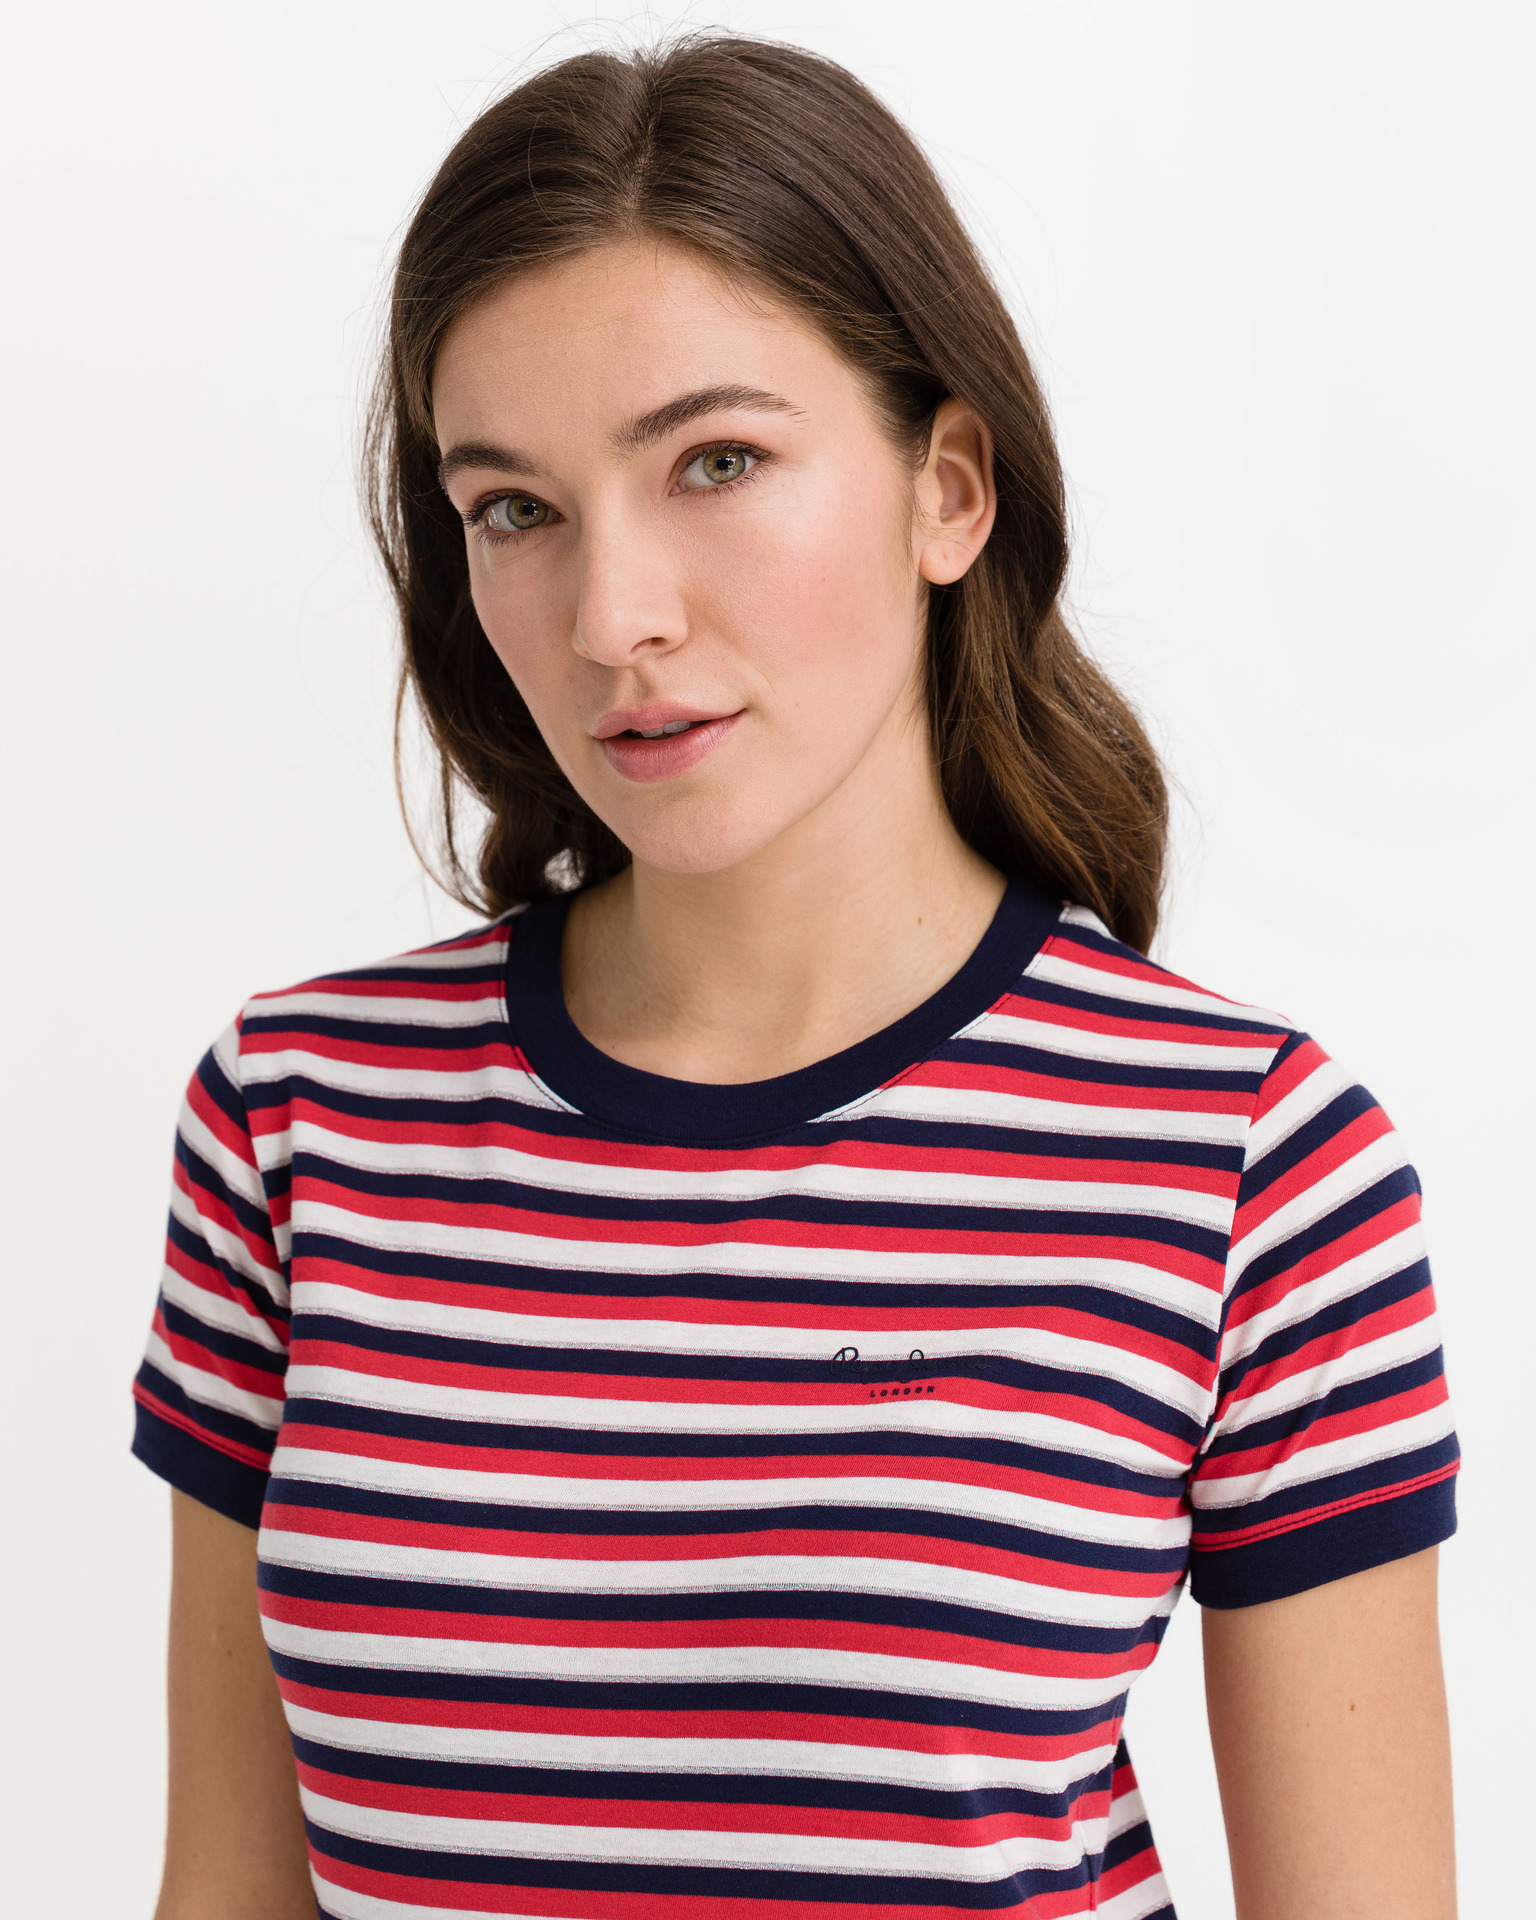 Pepe Jeans Bethany T-shirt Red White